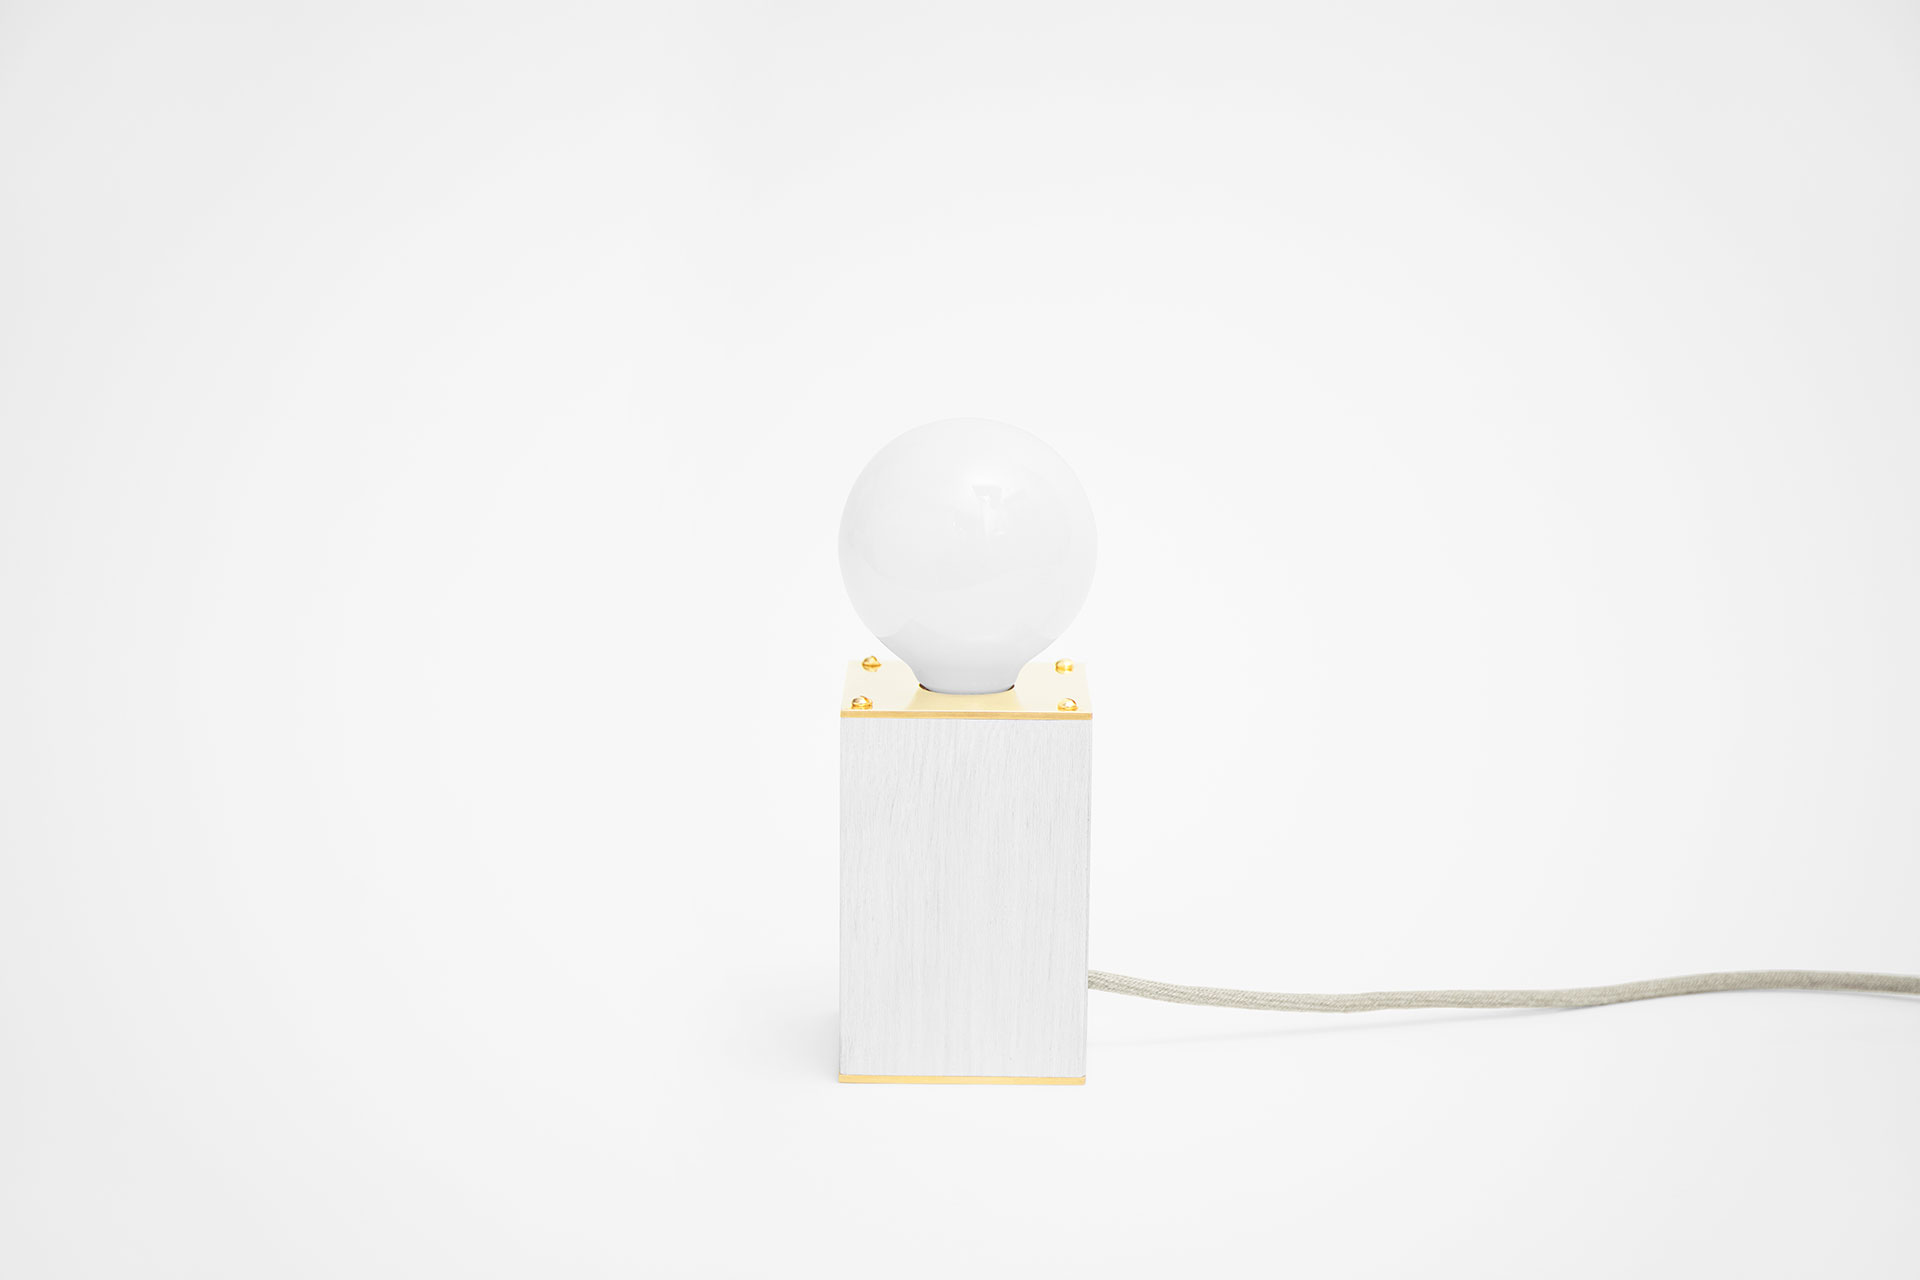 Minimalist Design Bedside Lamp In White Oak Wood And Gold Brass With Functional Touch Dimmer